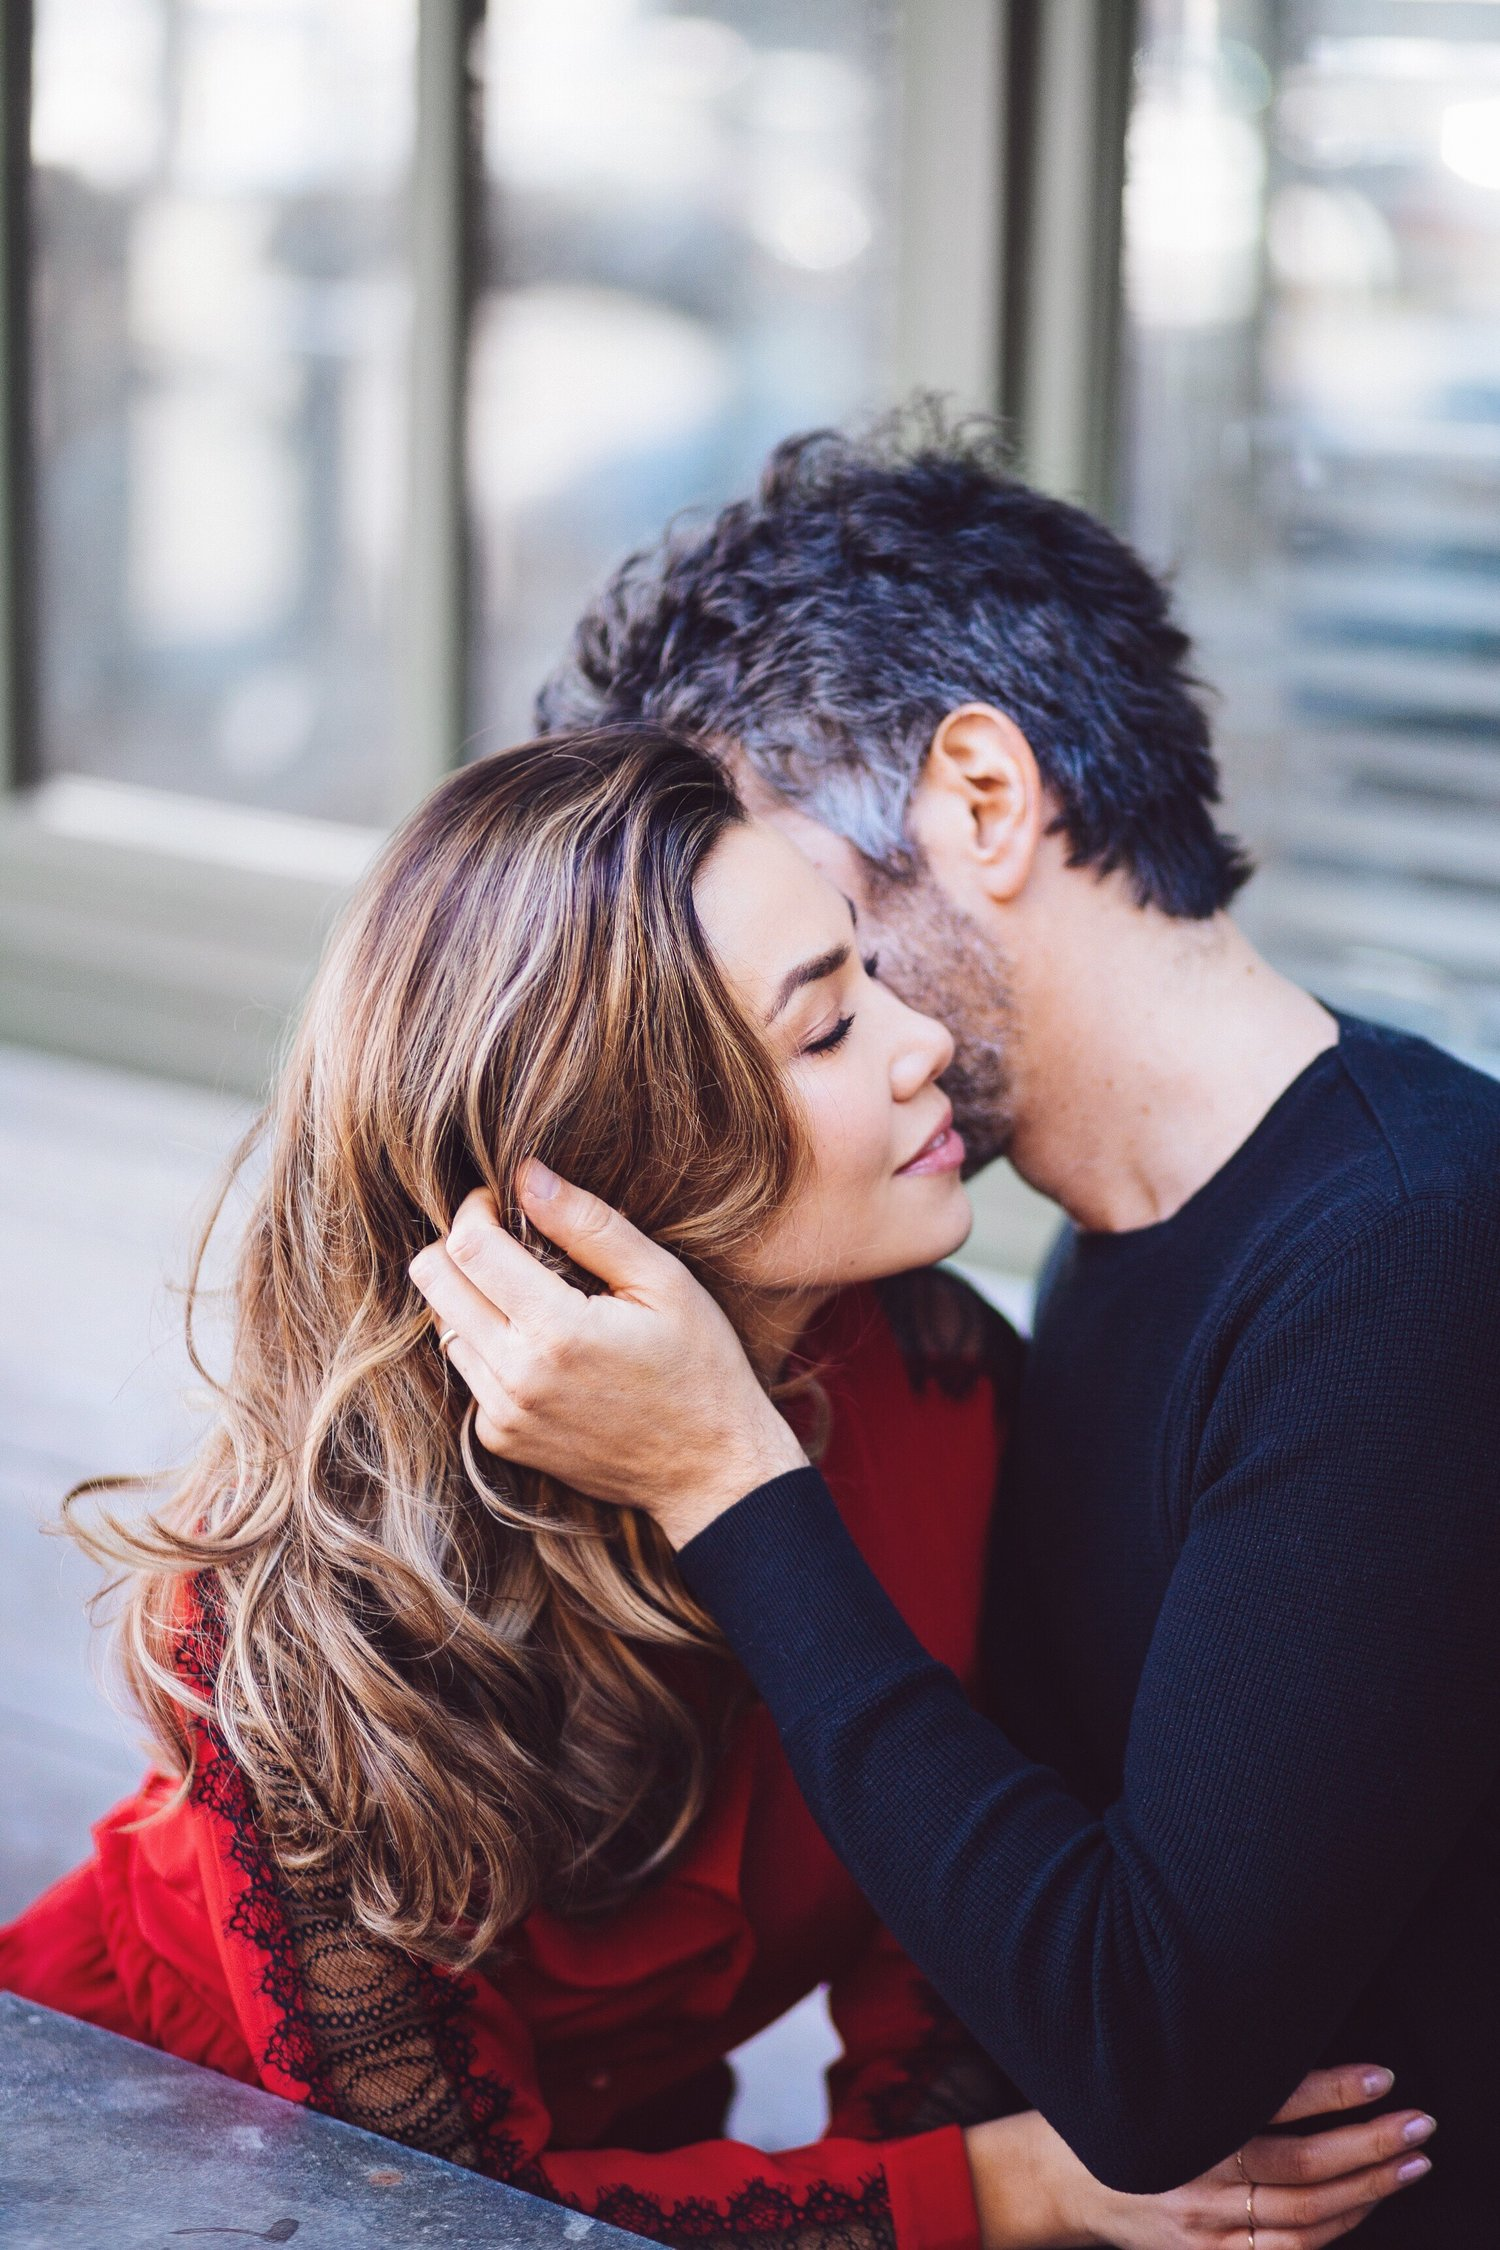 A touch can convey a lot more love and affection than words. Use these 16  non-sexual touches to feel more connected and loved in your relationship.